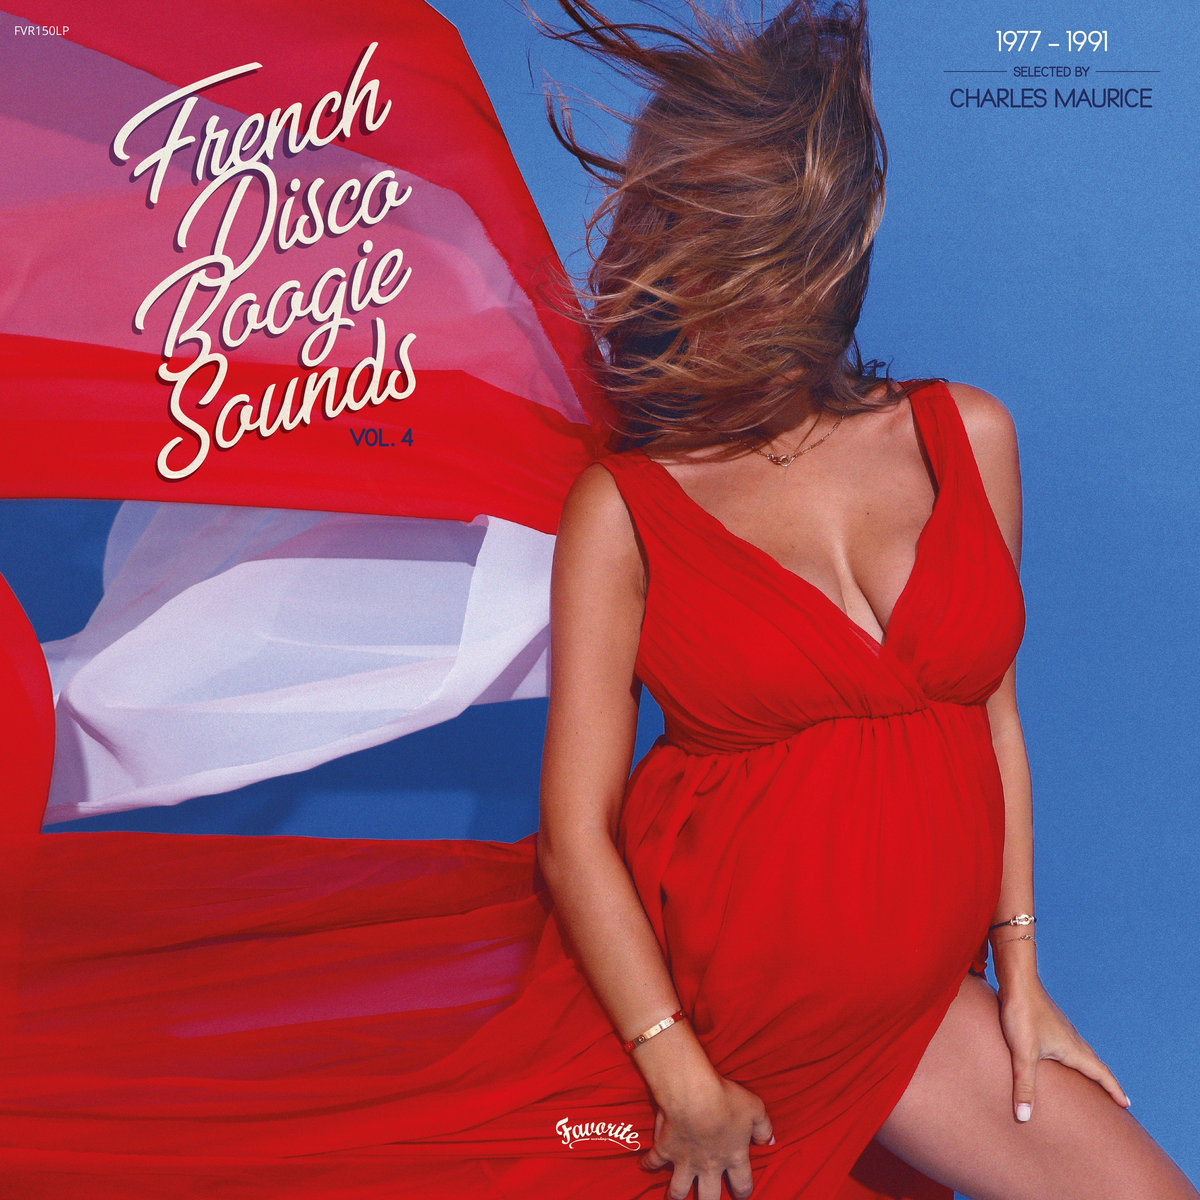 French Disco Boogie Sounds Vol​. ​4 (1977​-​1991, selected by Charles Maurice) // full stream